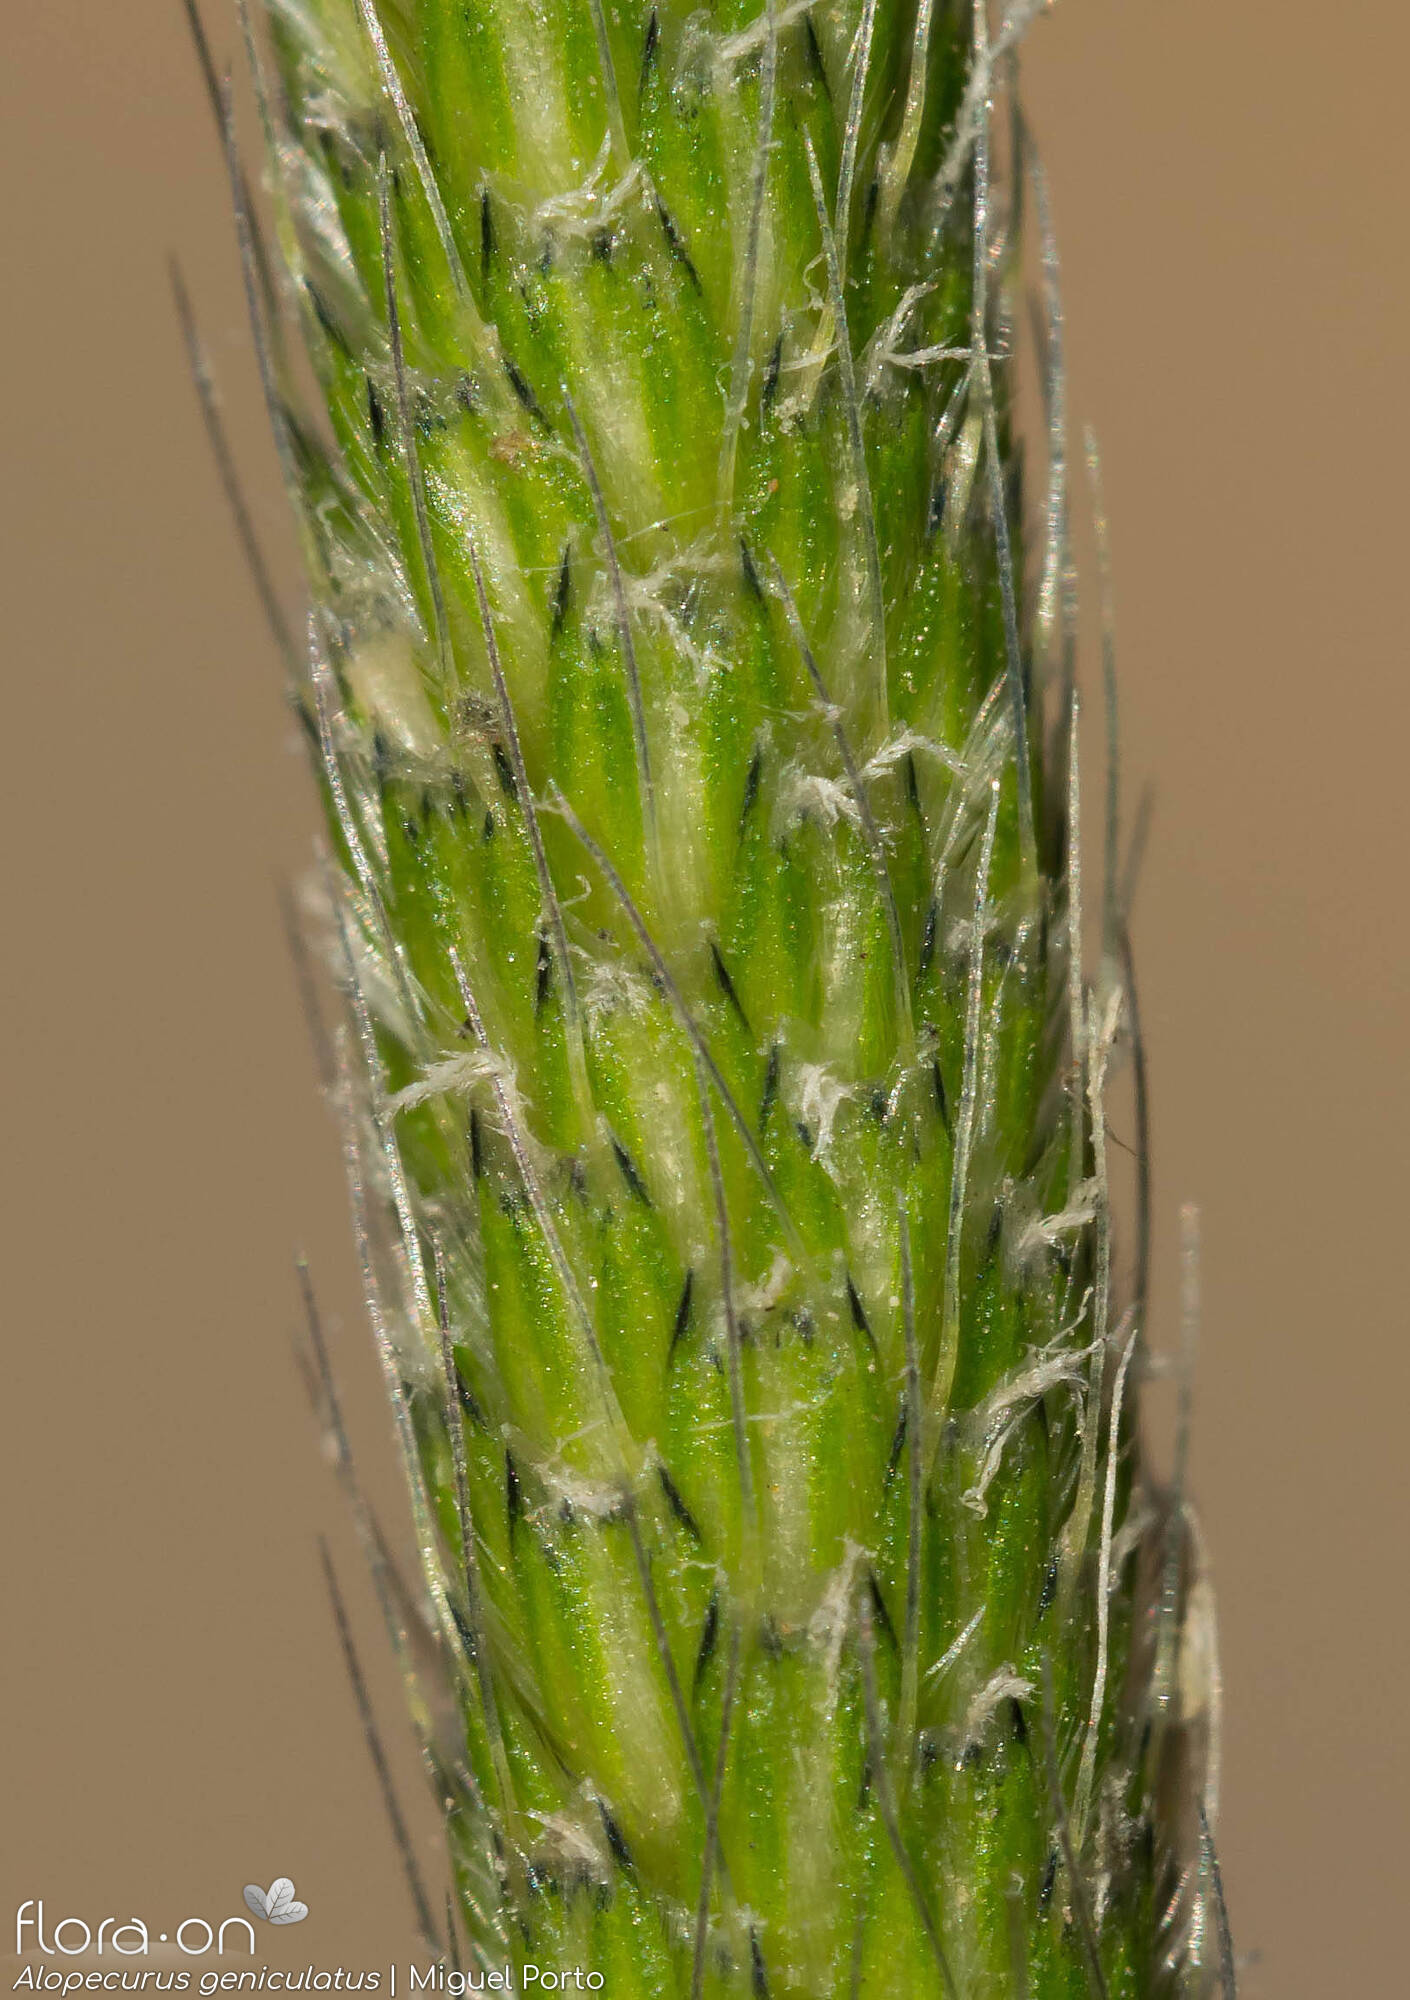 Alopecurus geniculatus - Flor (close-up) | Miguel Porto; CC BY-NC 4.0